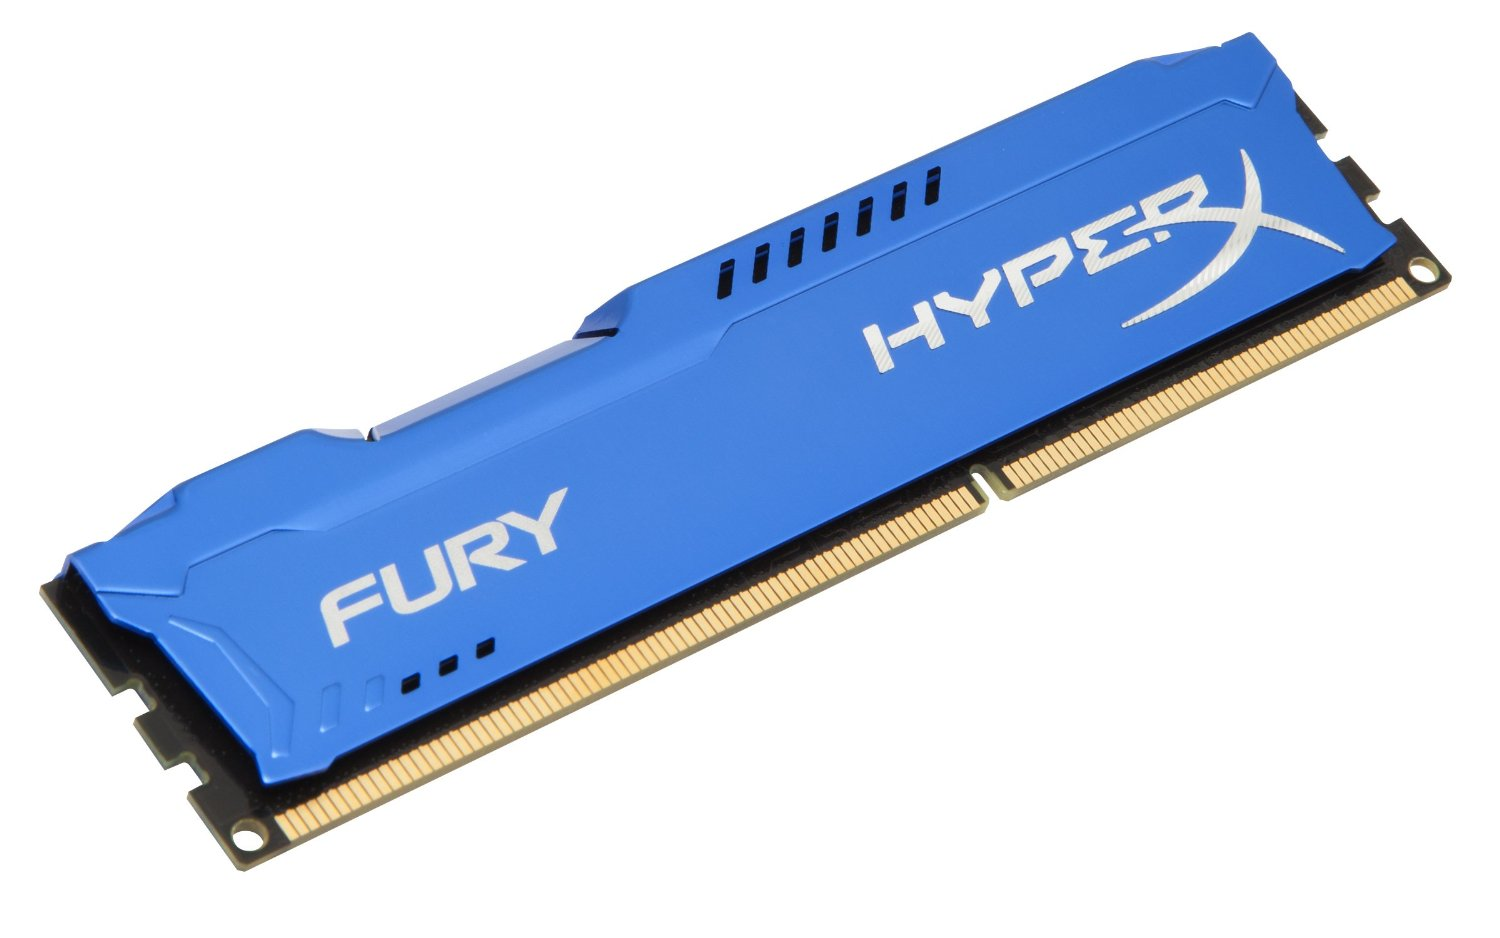 Ram Kingston 4G 1600MHZ DDR3 CL10 Dimm HyperX Fury